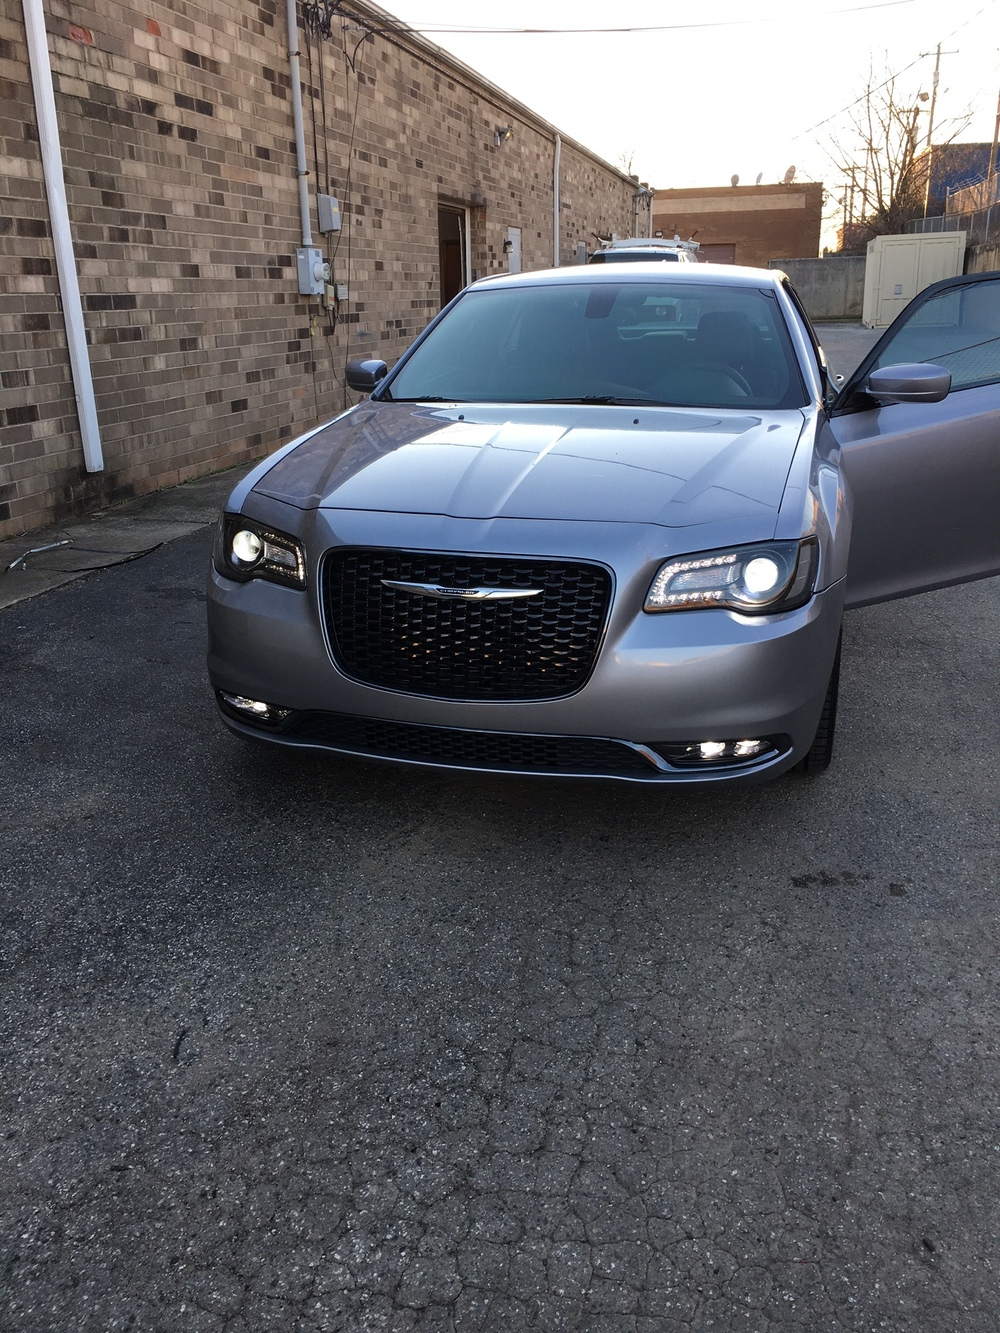 Chrysler 300.JPG